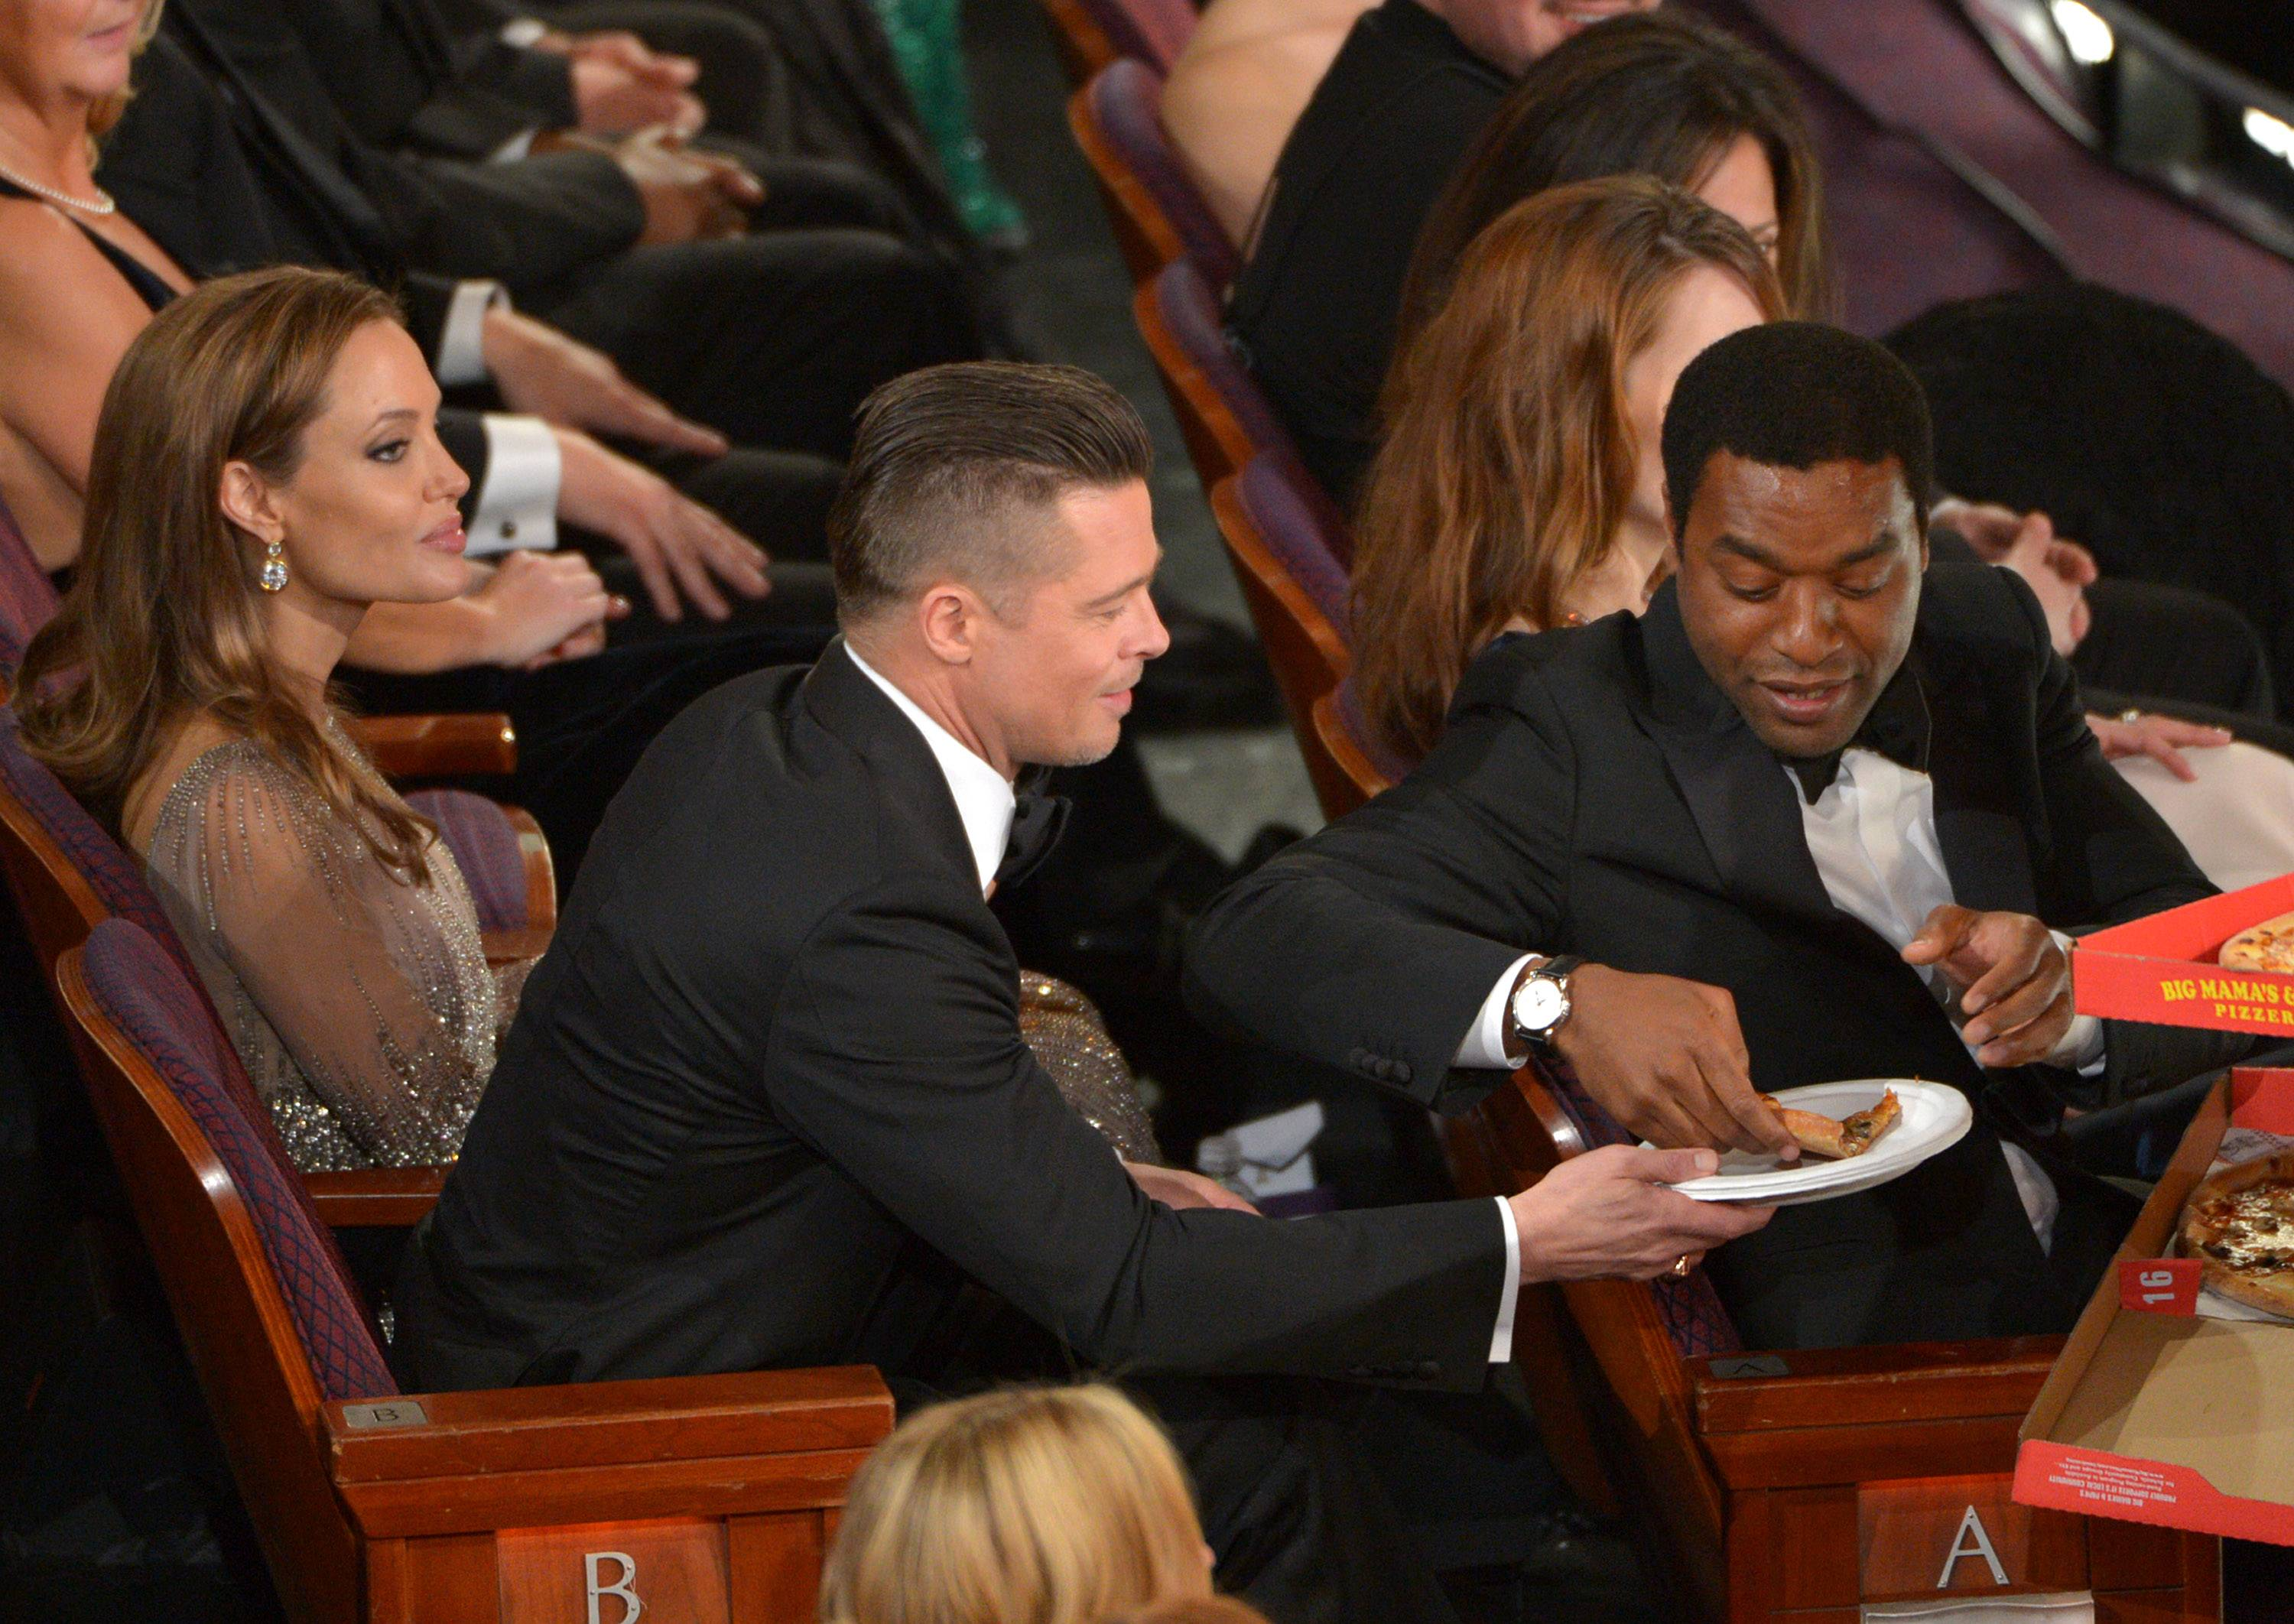 Angelina Jolie, left, looks on as Brad Pitt shares a slice of pizza with Chiwetel Ejiofor in the audience.